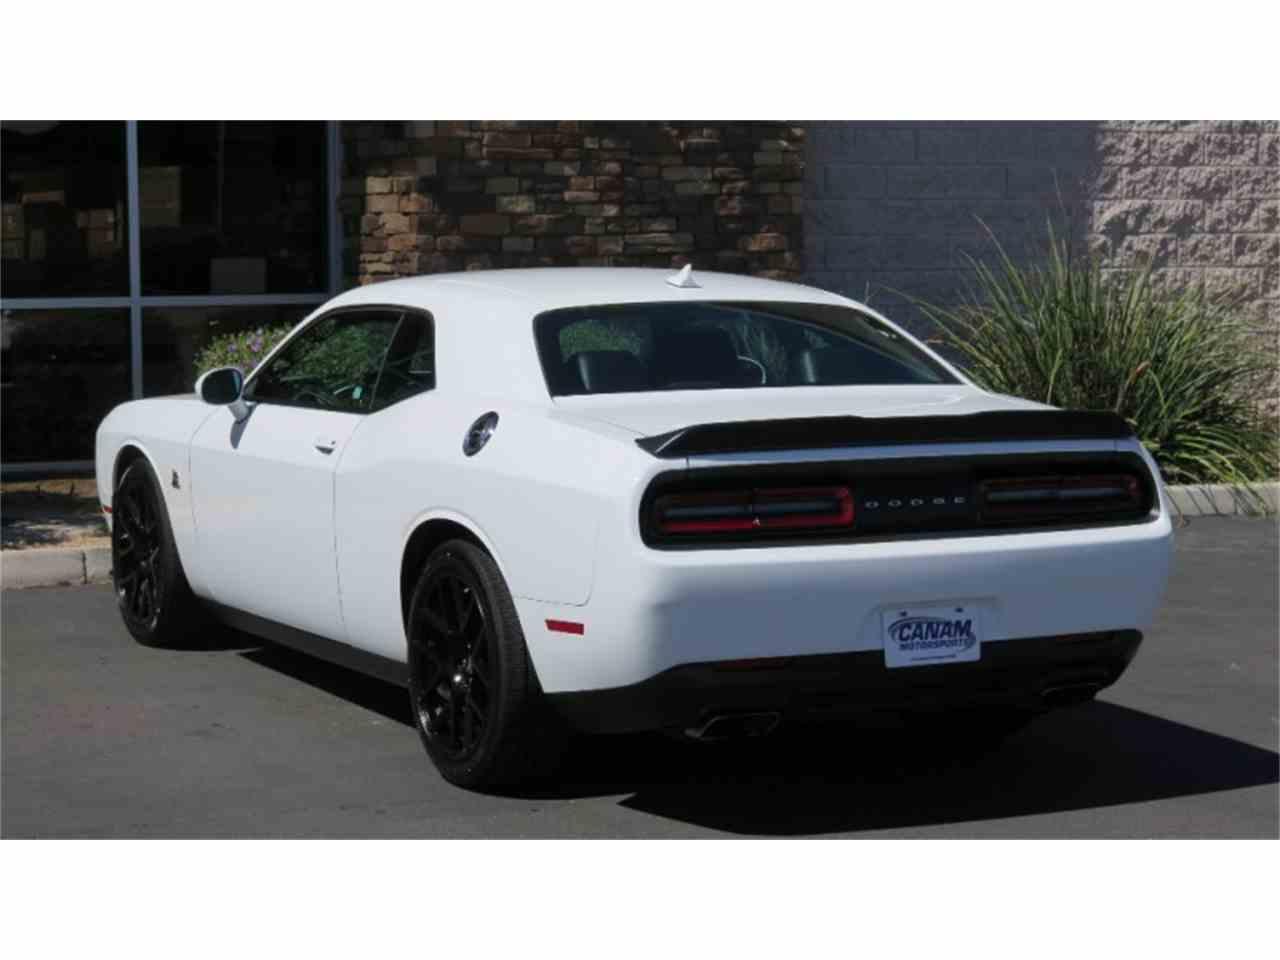 2015 dodge challenger r t scat pack 6 4l for sale. Black Bedroom Furniture Sets. Home Design Ideas